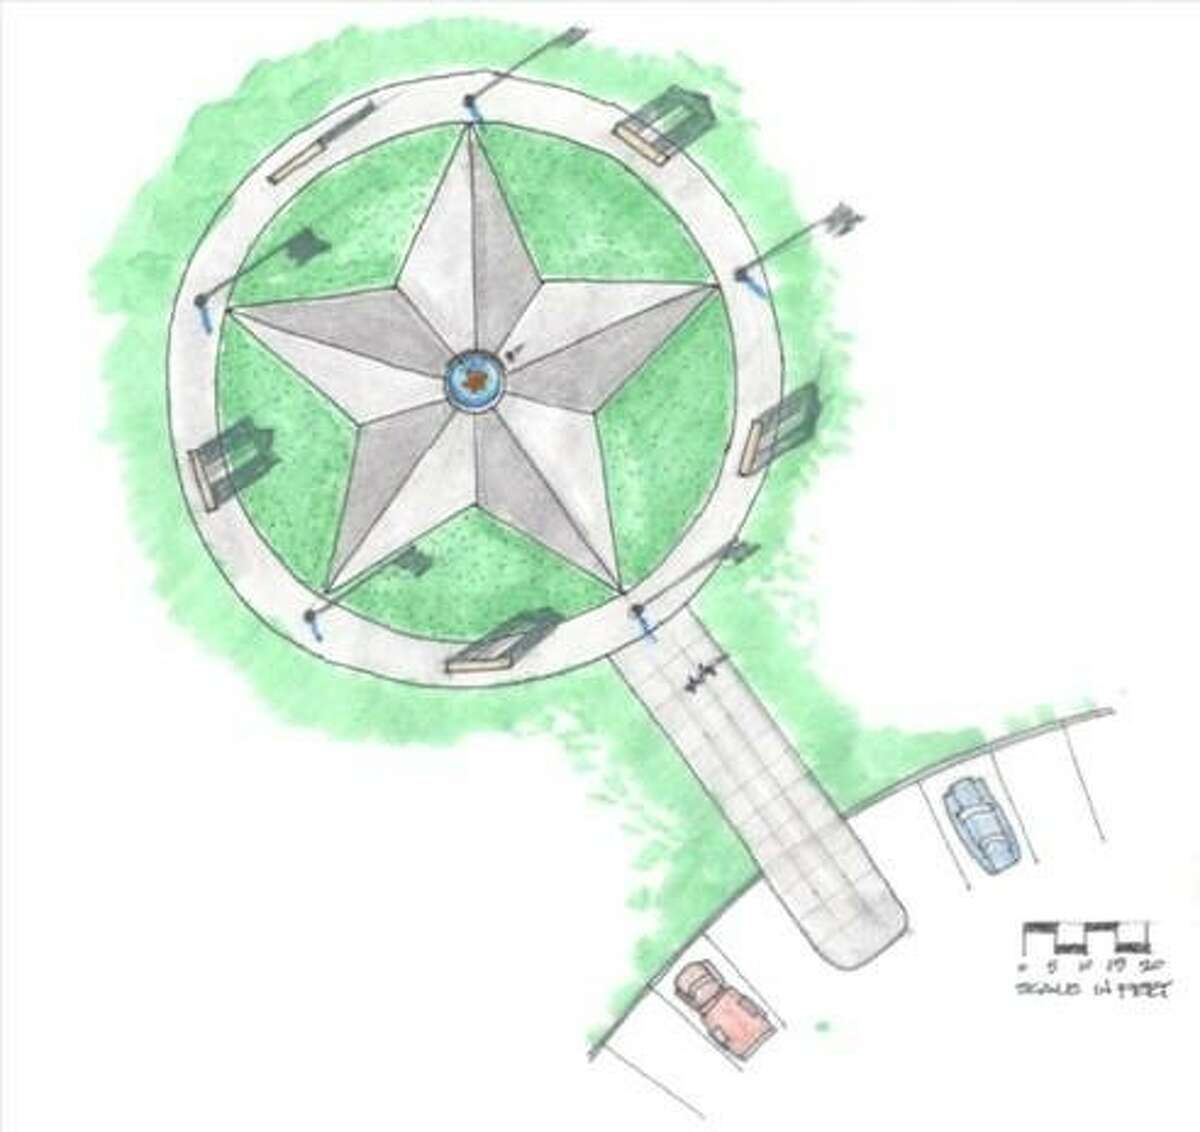 Missouri City resident Lloyd Lentz's winning design for a Veterans Memorial structure, to be built in one of the city's parks.